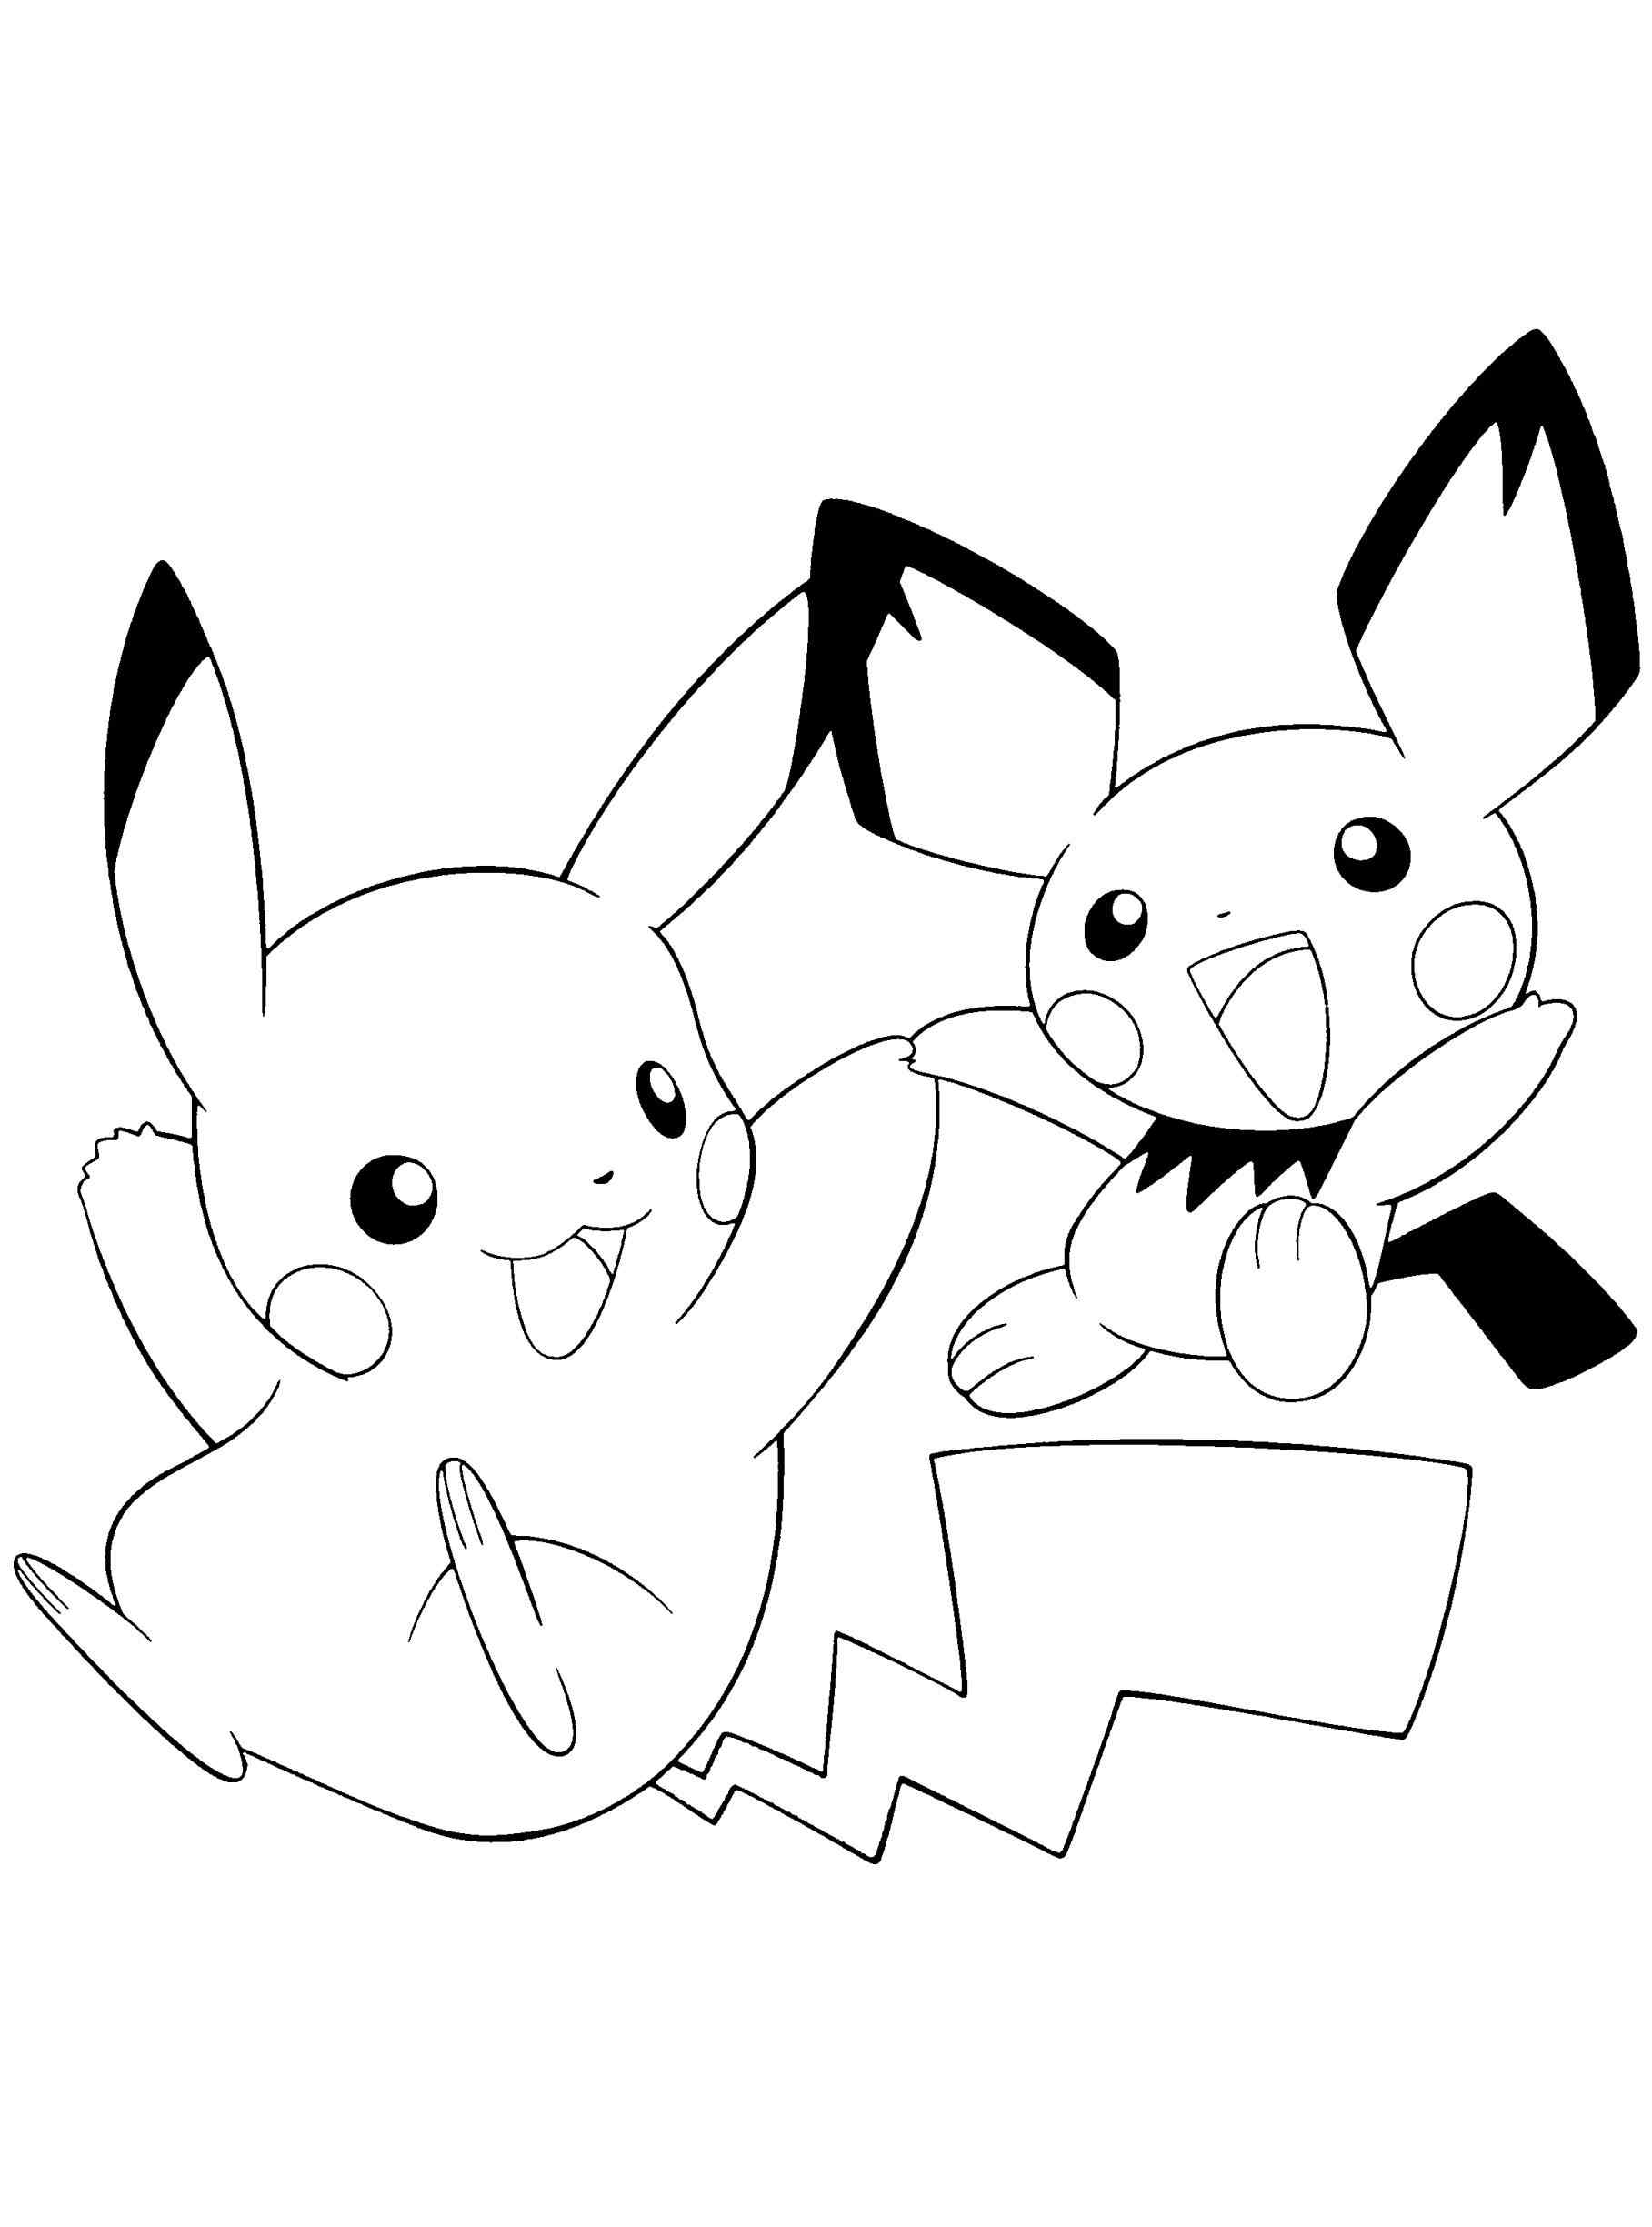 pikachu drawing coloring pages pikachu tattoo pikachu drawing pikachu coloring page drawing pikachu coloring pages